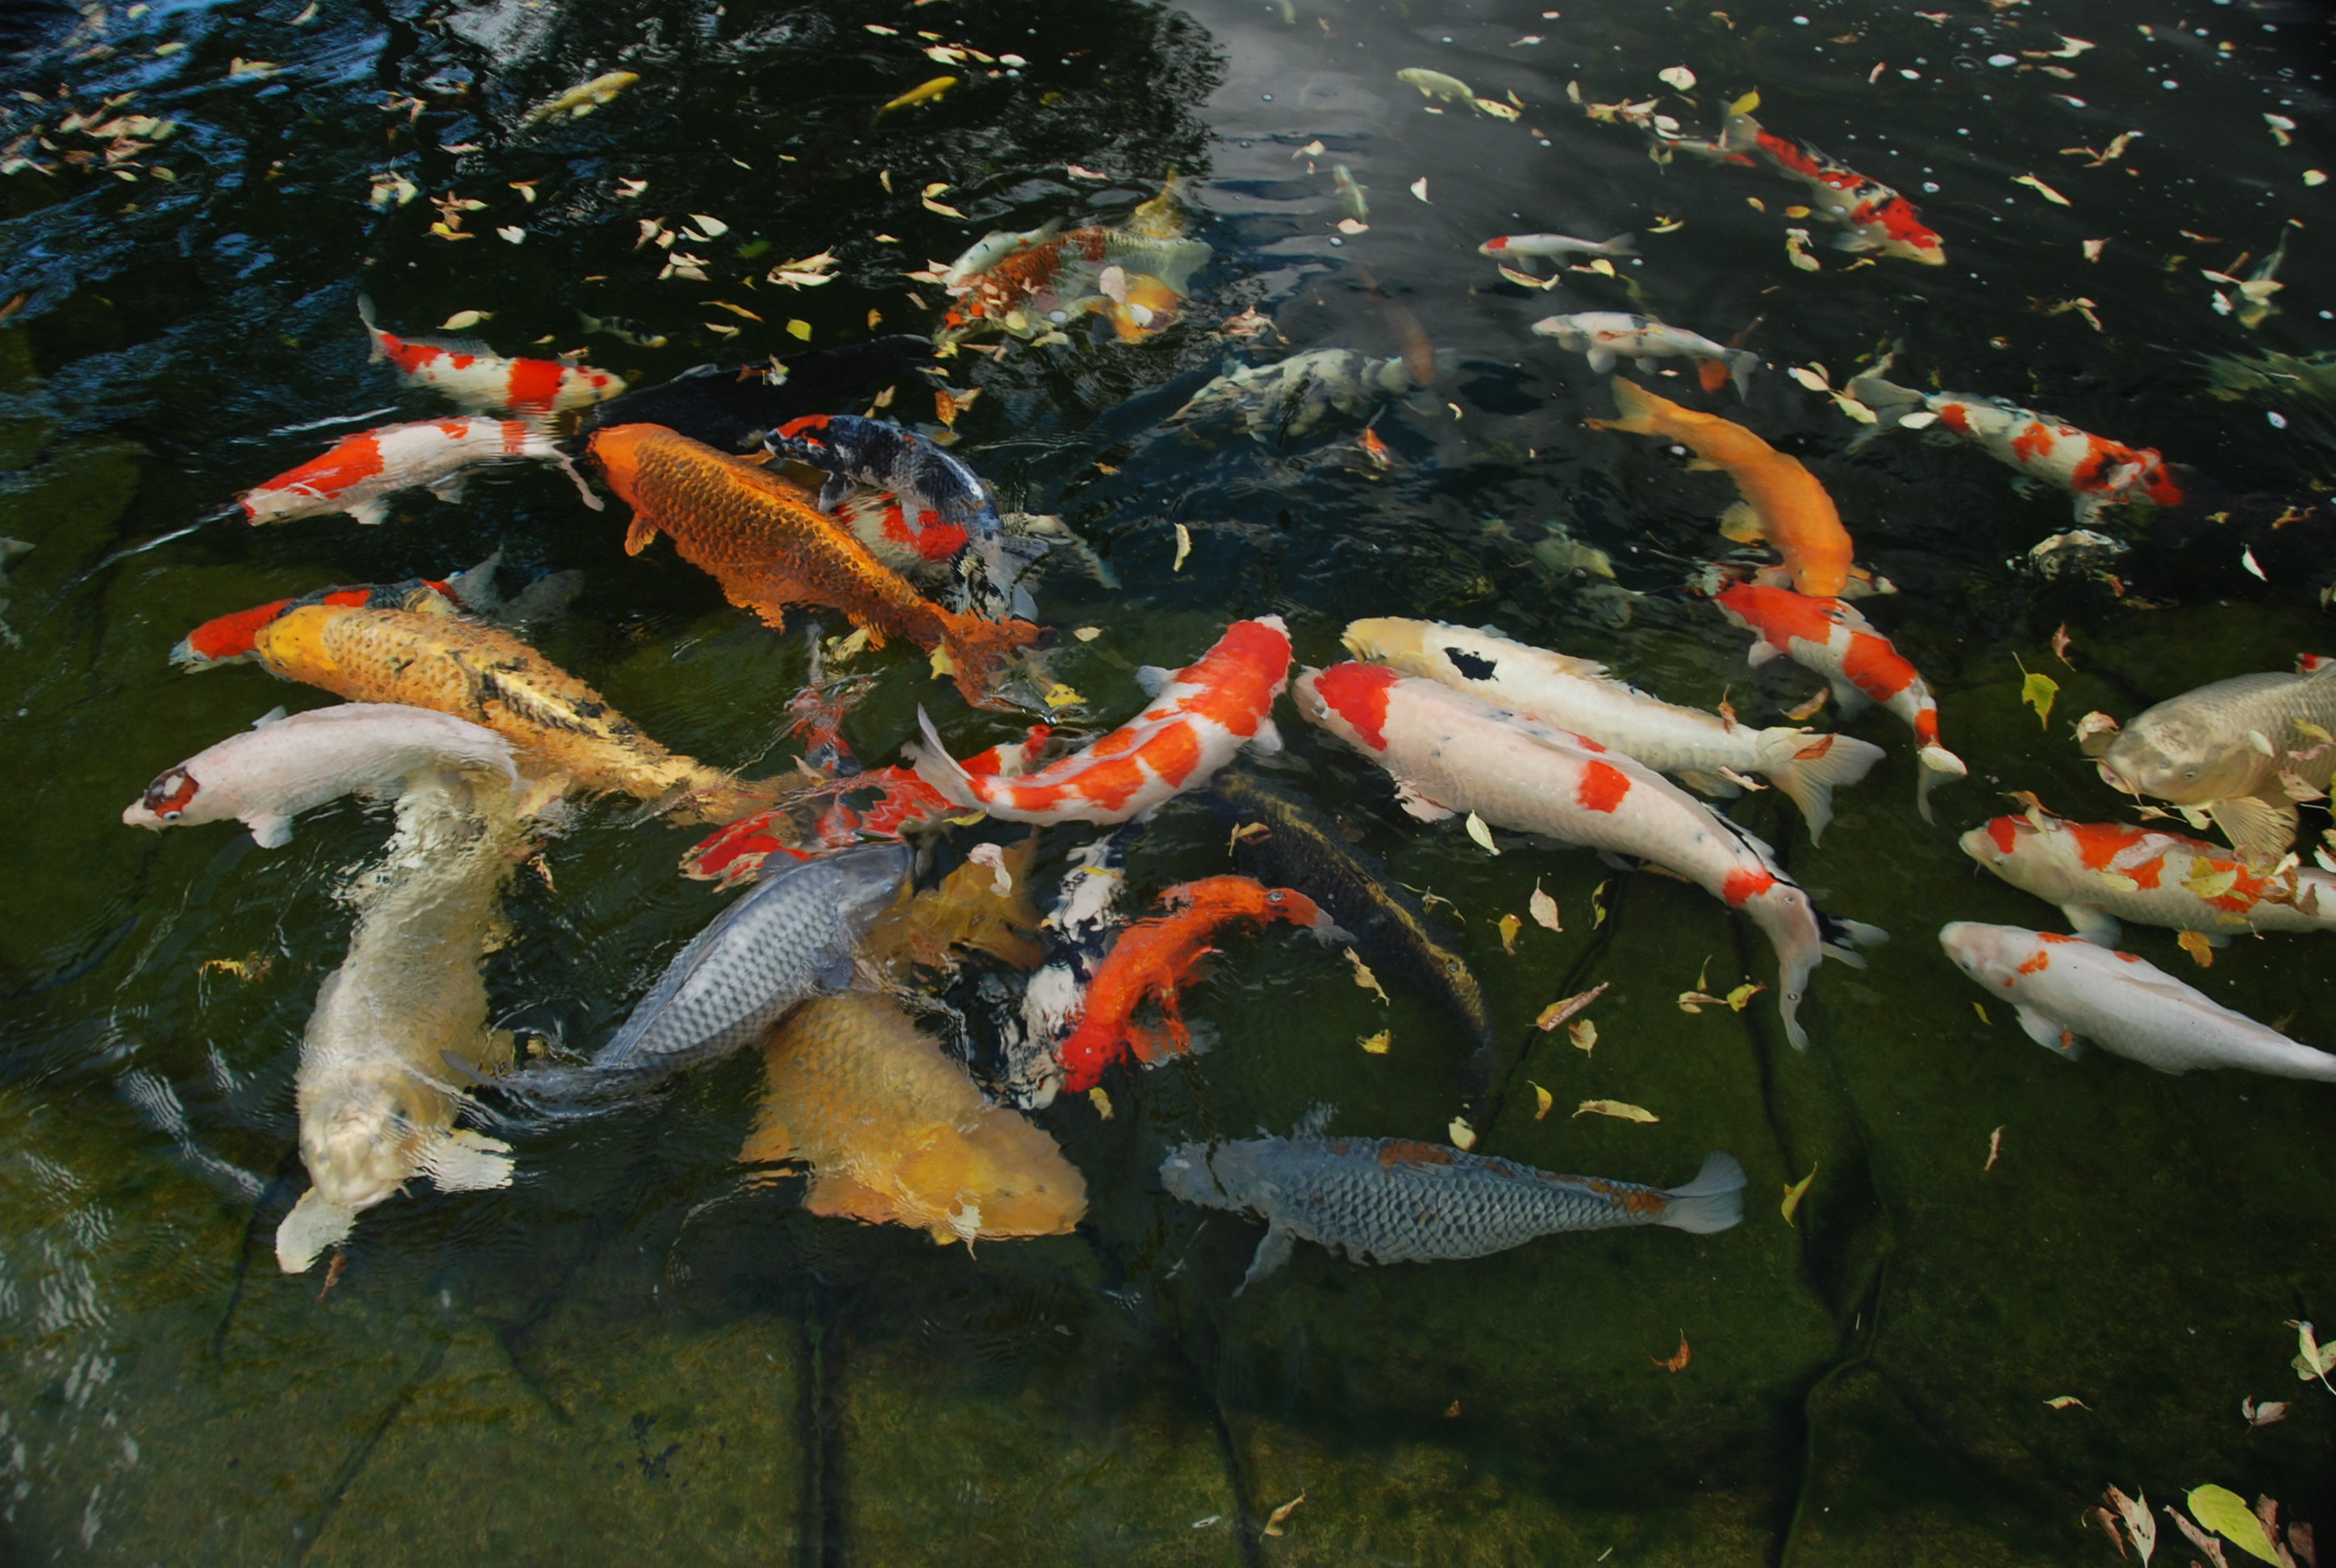 Koi acres imported japanese koi online shopping for koi for Koi pond photos